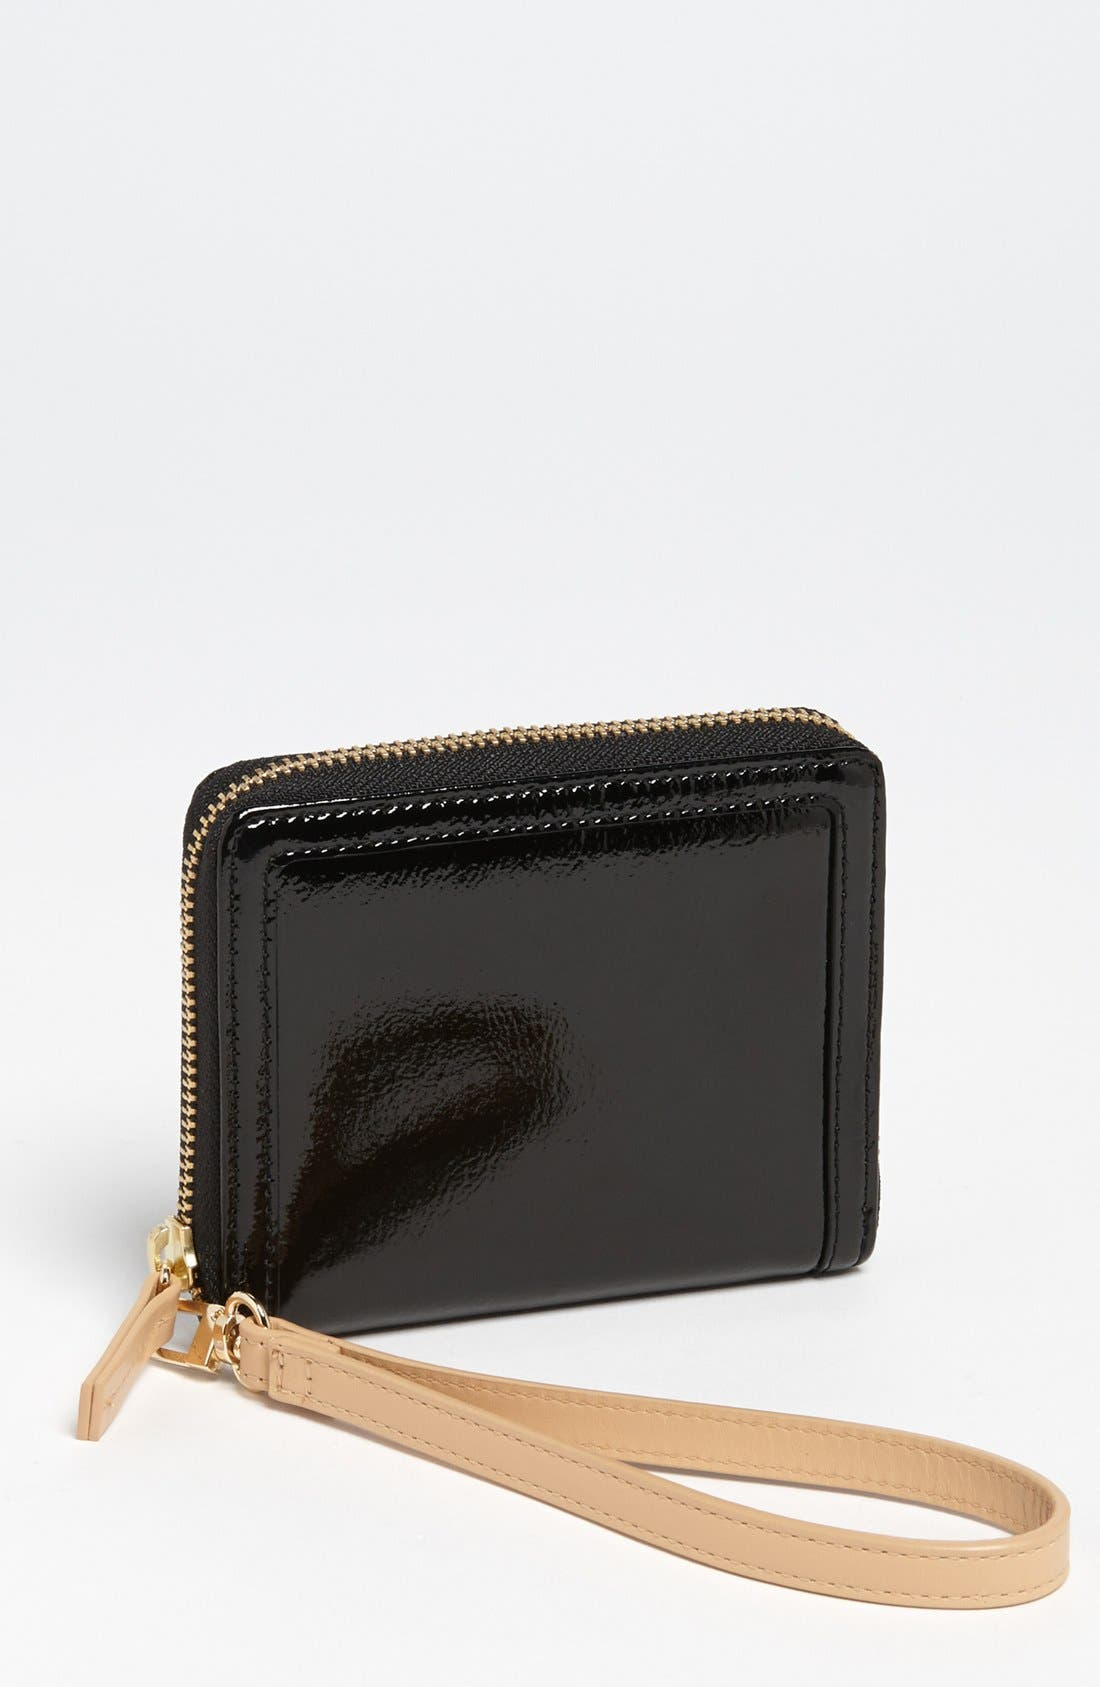 Main Image - Halogen 'Small' Leather Wristlet